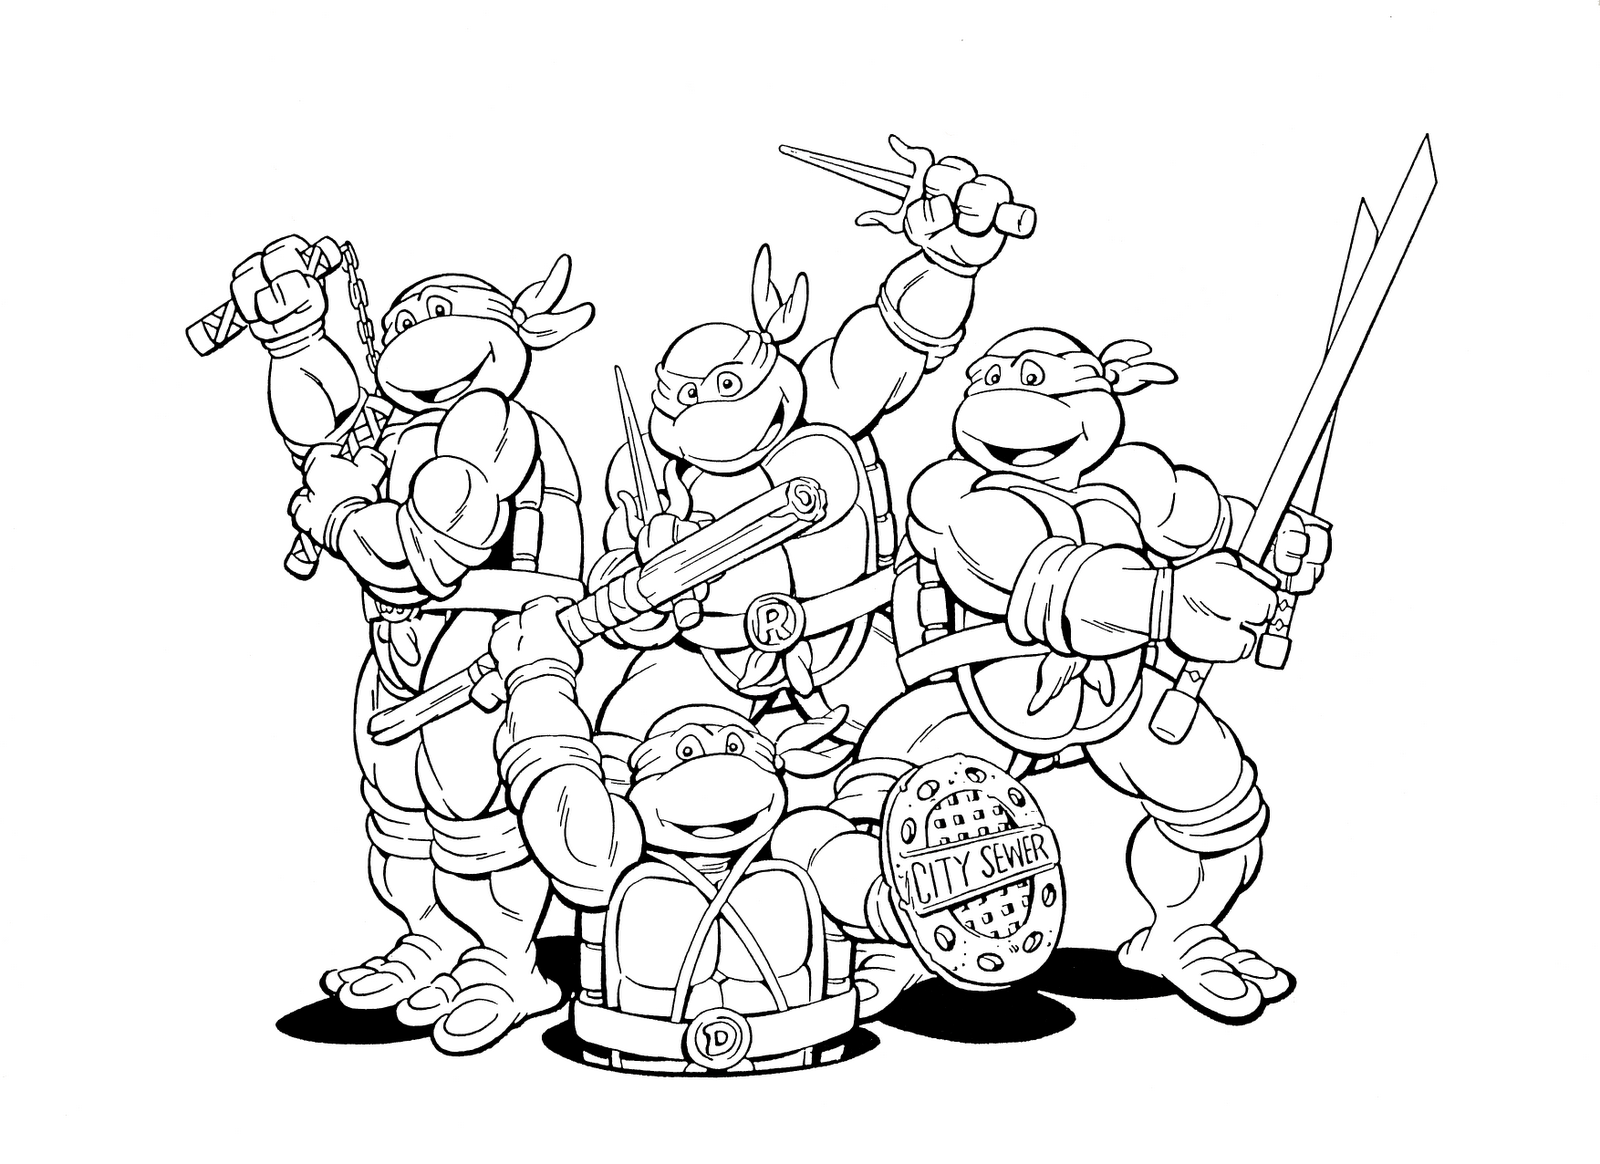 ninja turtles colouring pictures to print 20 free printable ninja turtle coloring pages ninja to turtles pictures colouring print